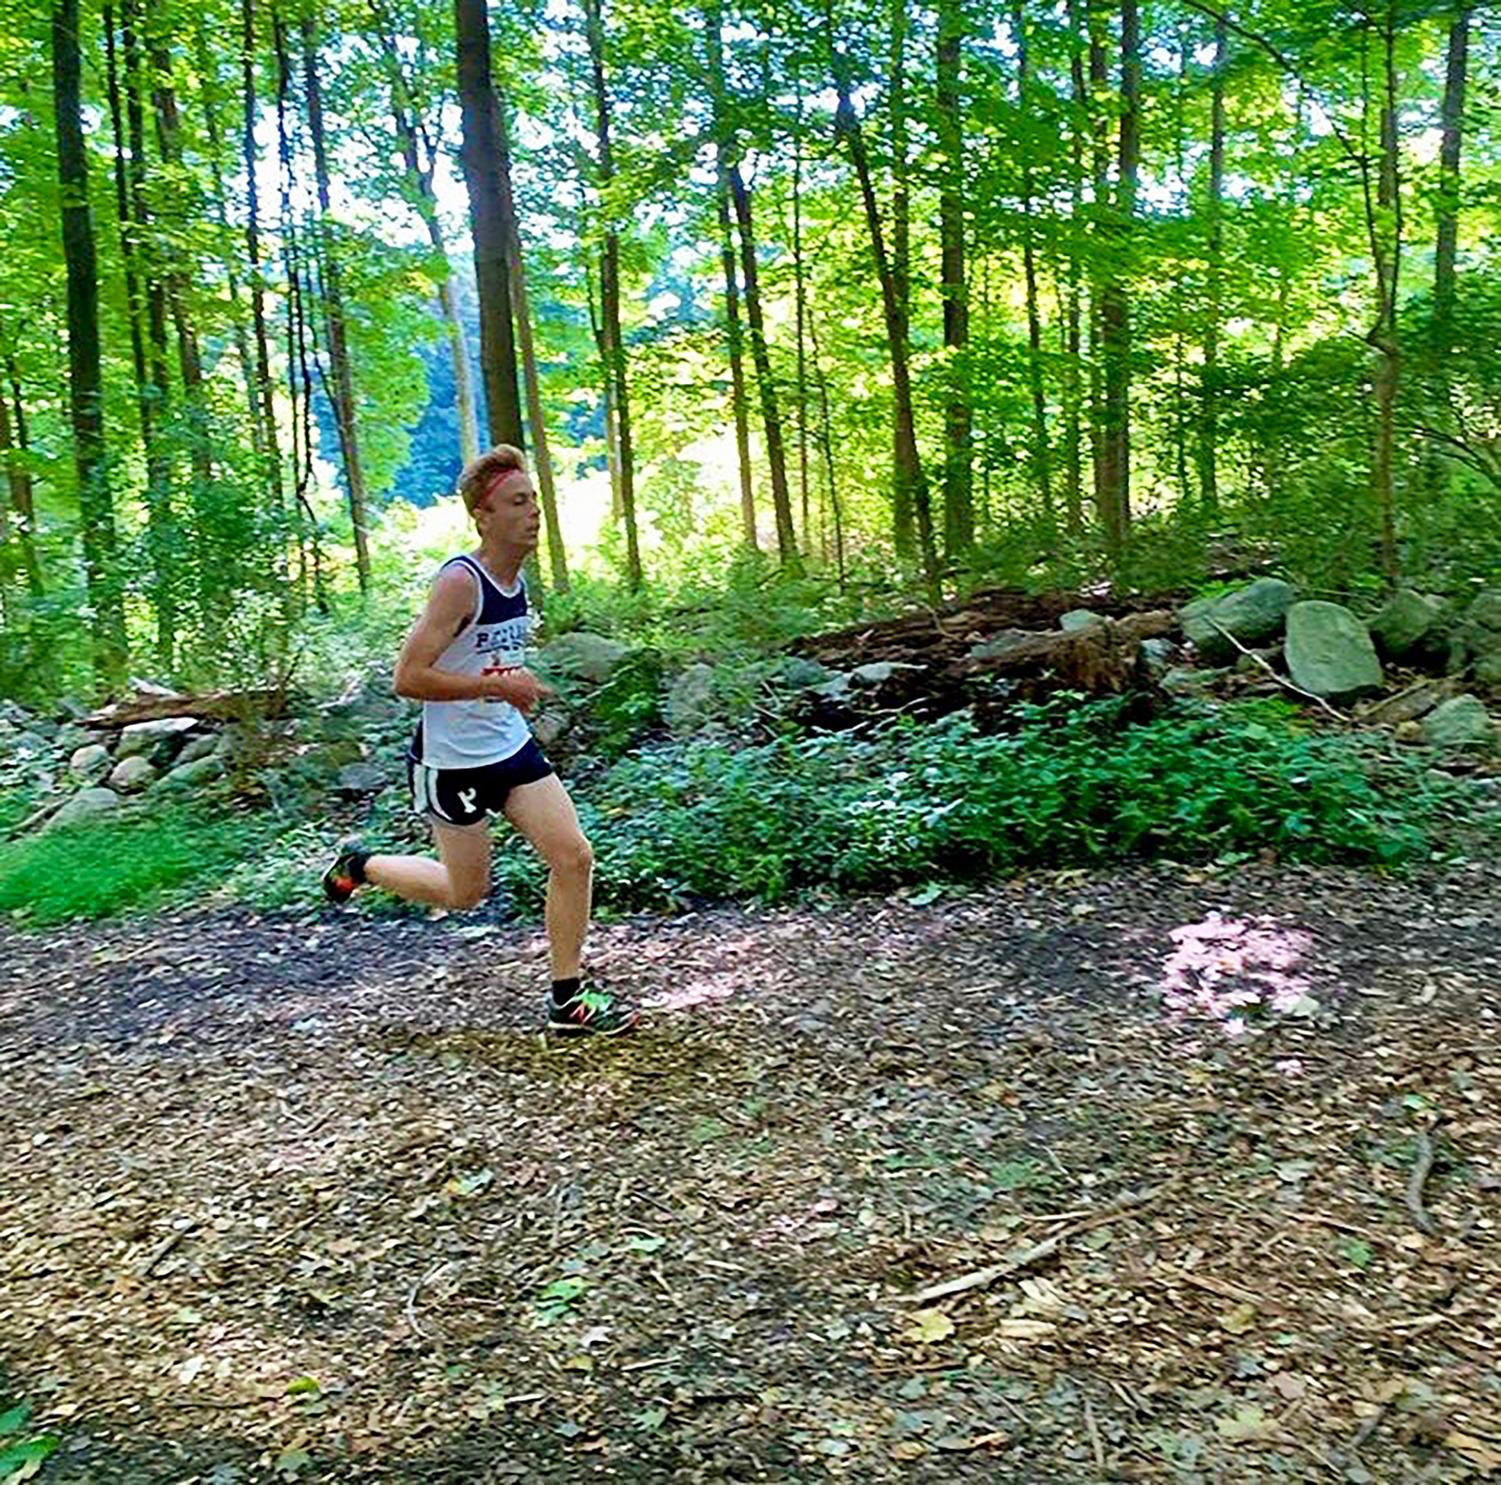 Sophomore Ben Levine chases 1st place to the finish line.